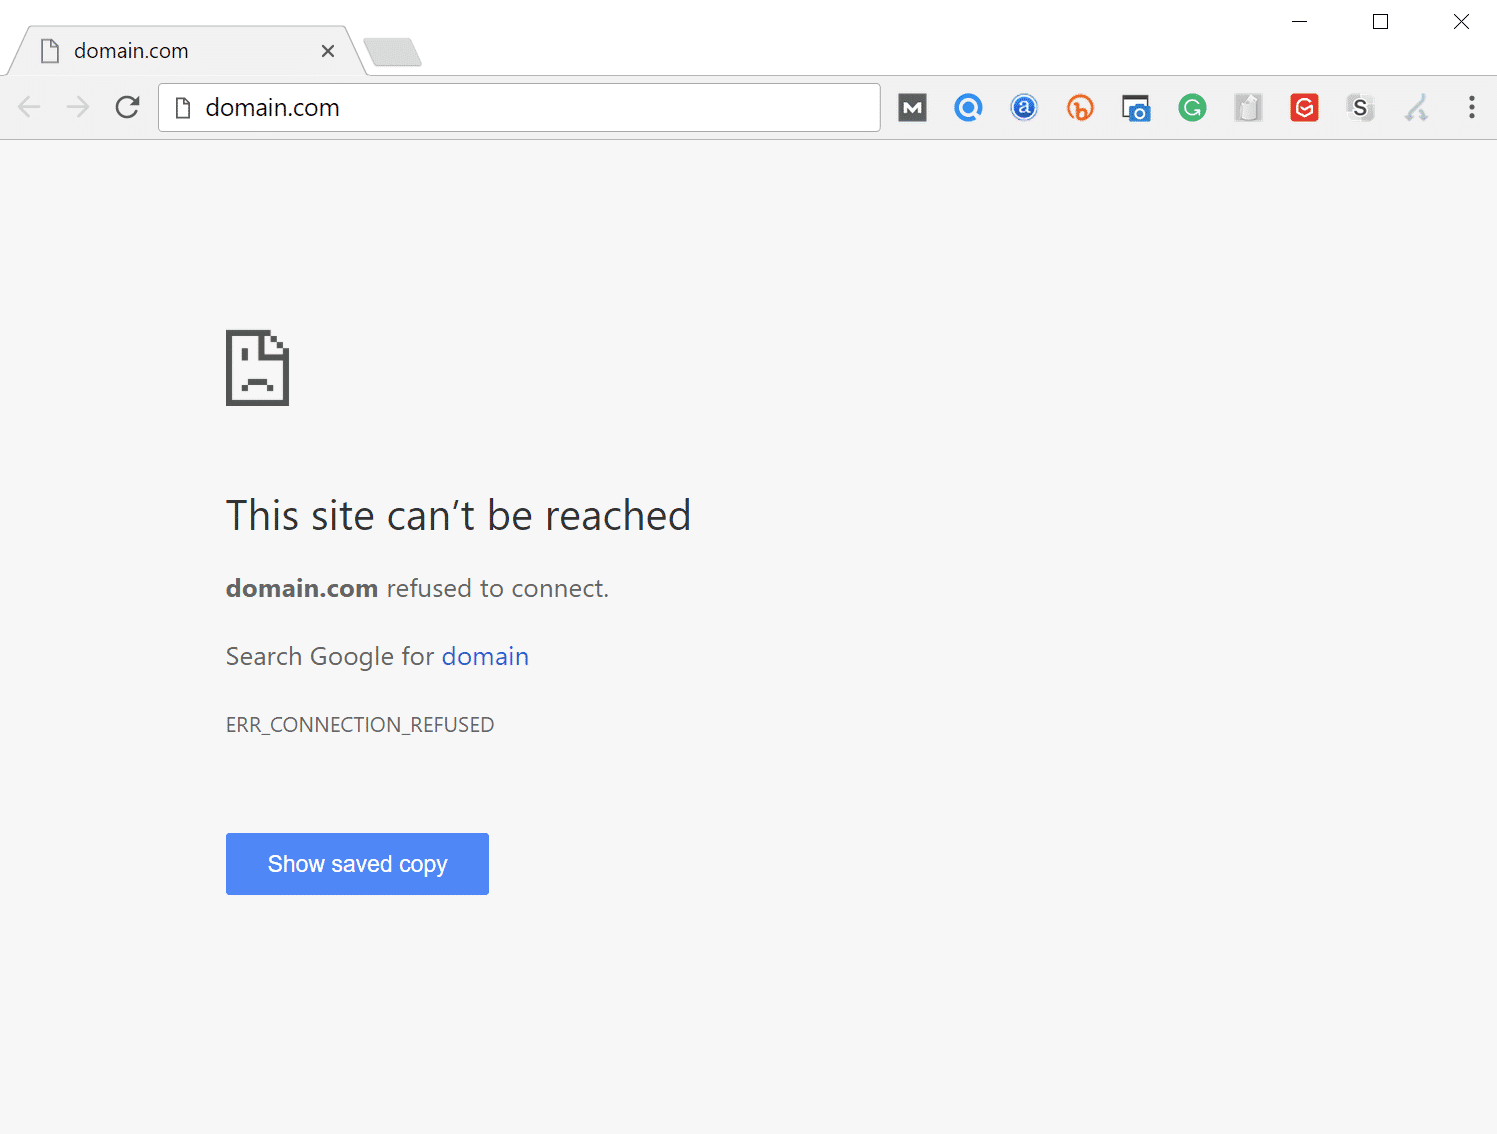 ERR_CONNECTION_REFUSED foutmelding in Google Chrome